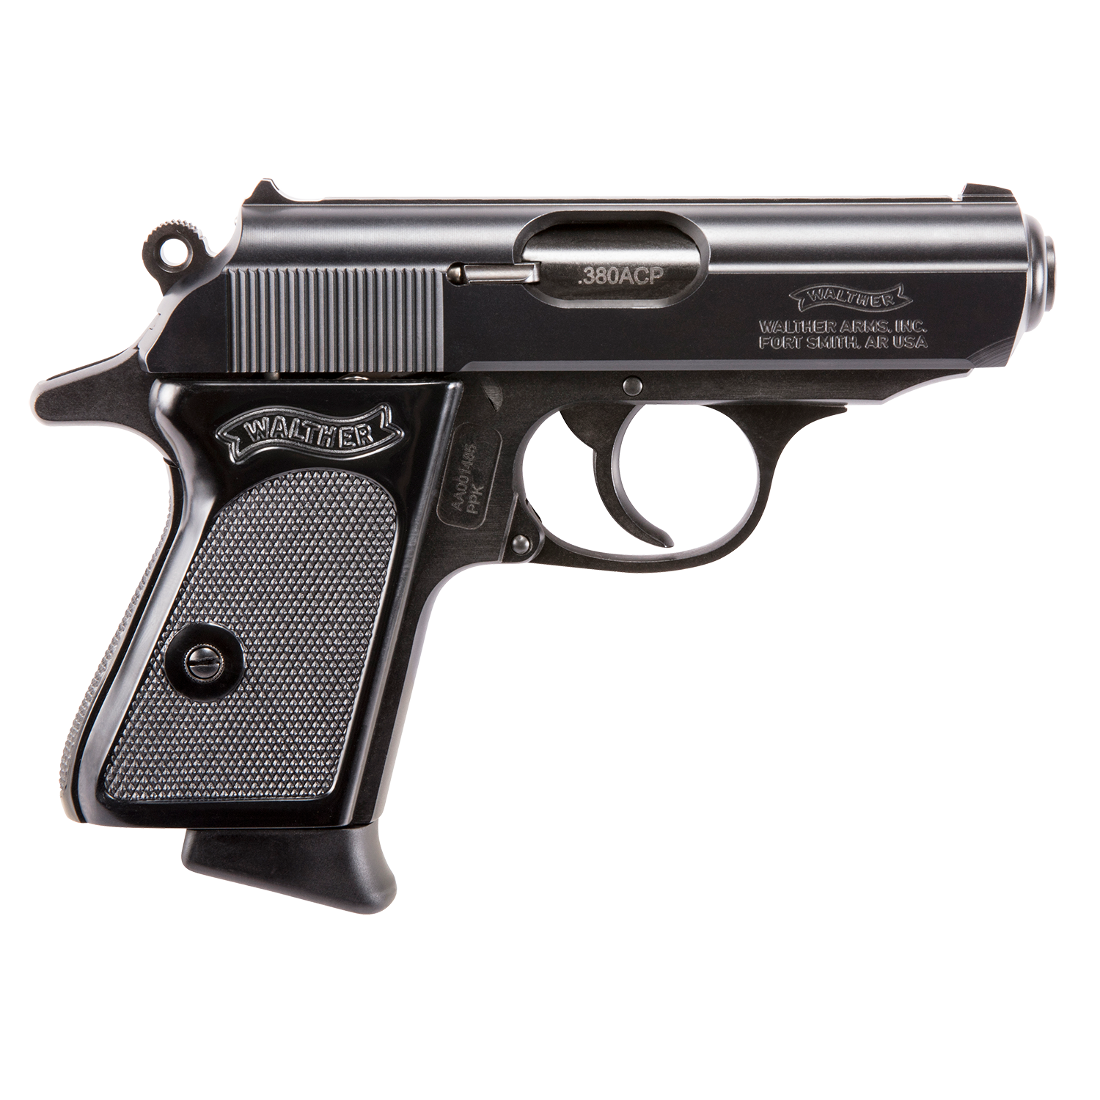 The Walther PPK: A Timeless Classic